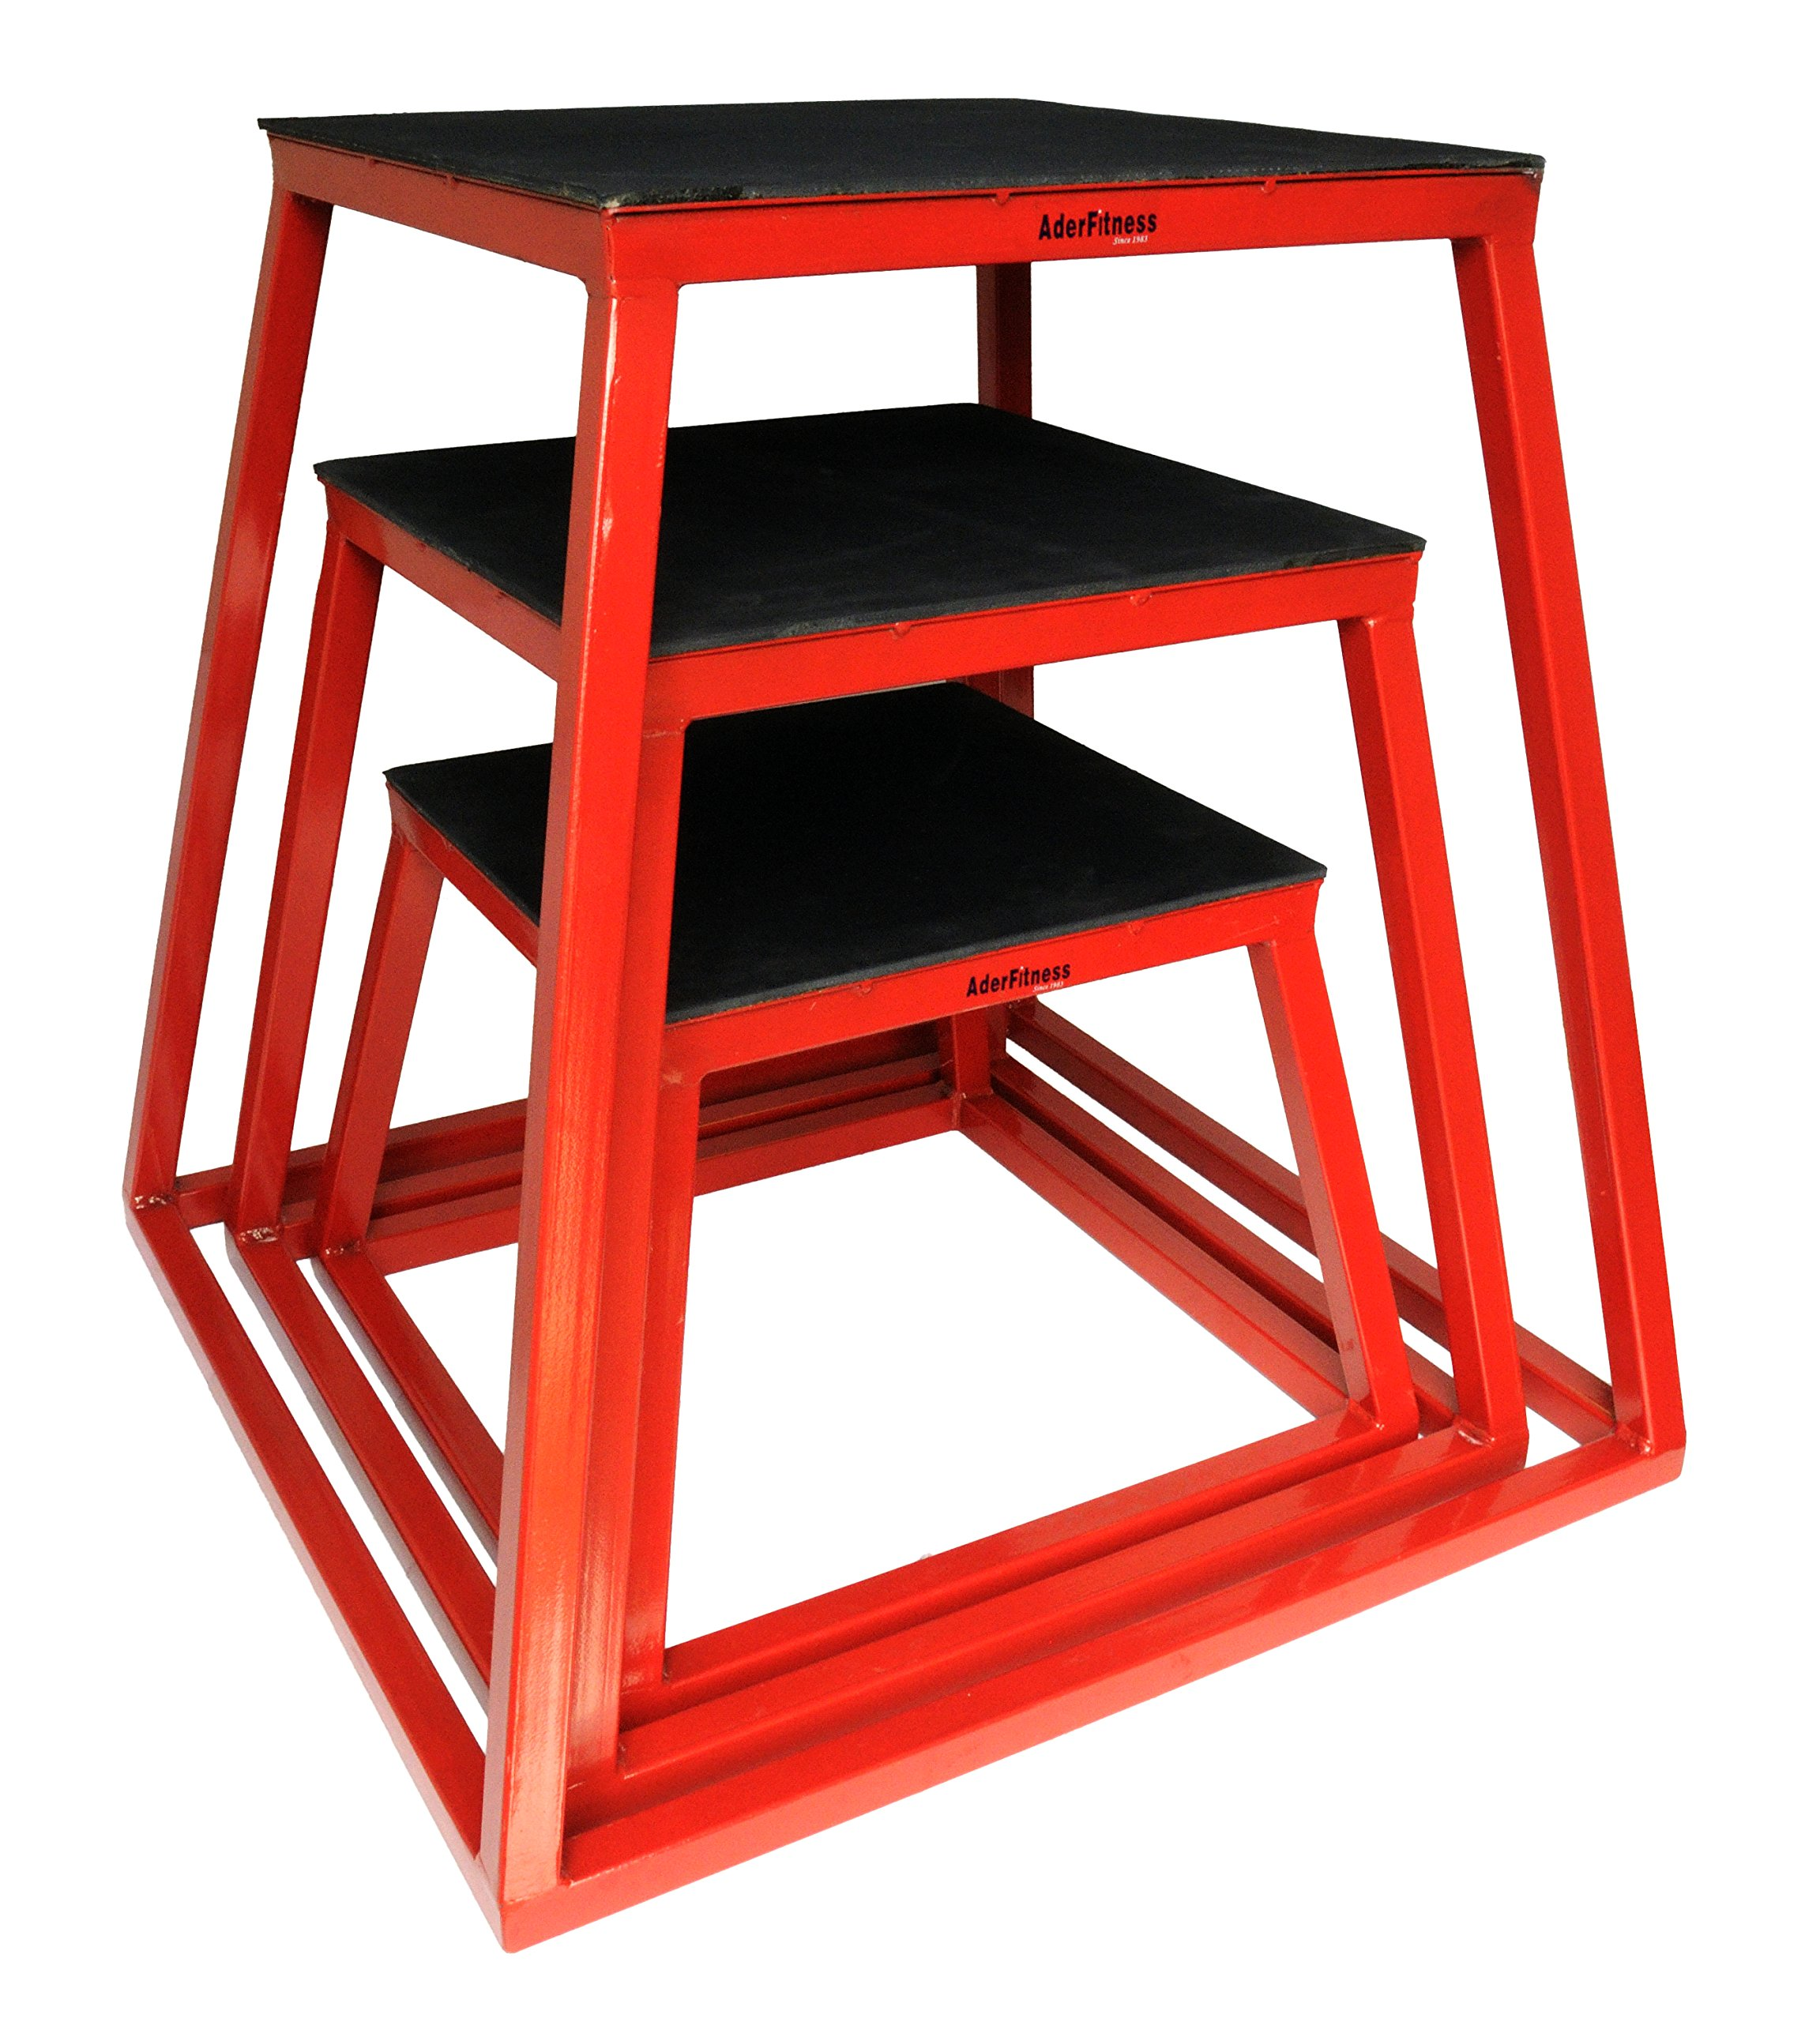 Ader Sporting Goods Plyometric Platform Box Set- 12'',18'', 24'' Red